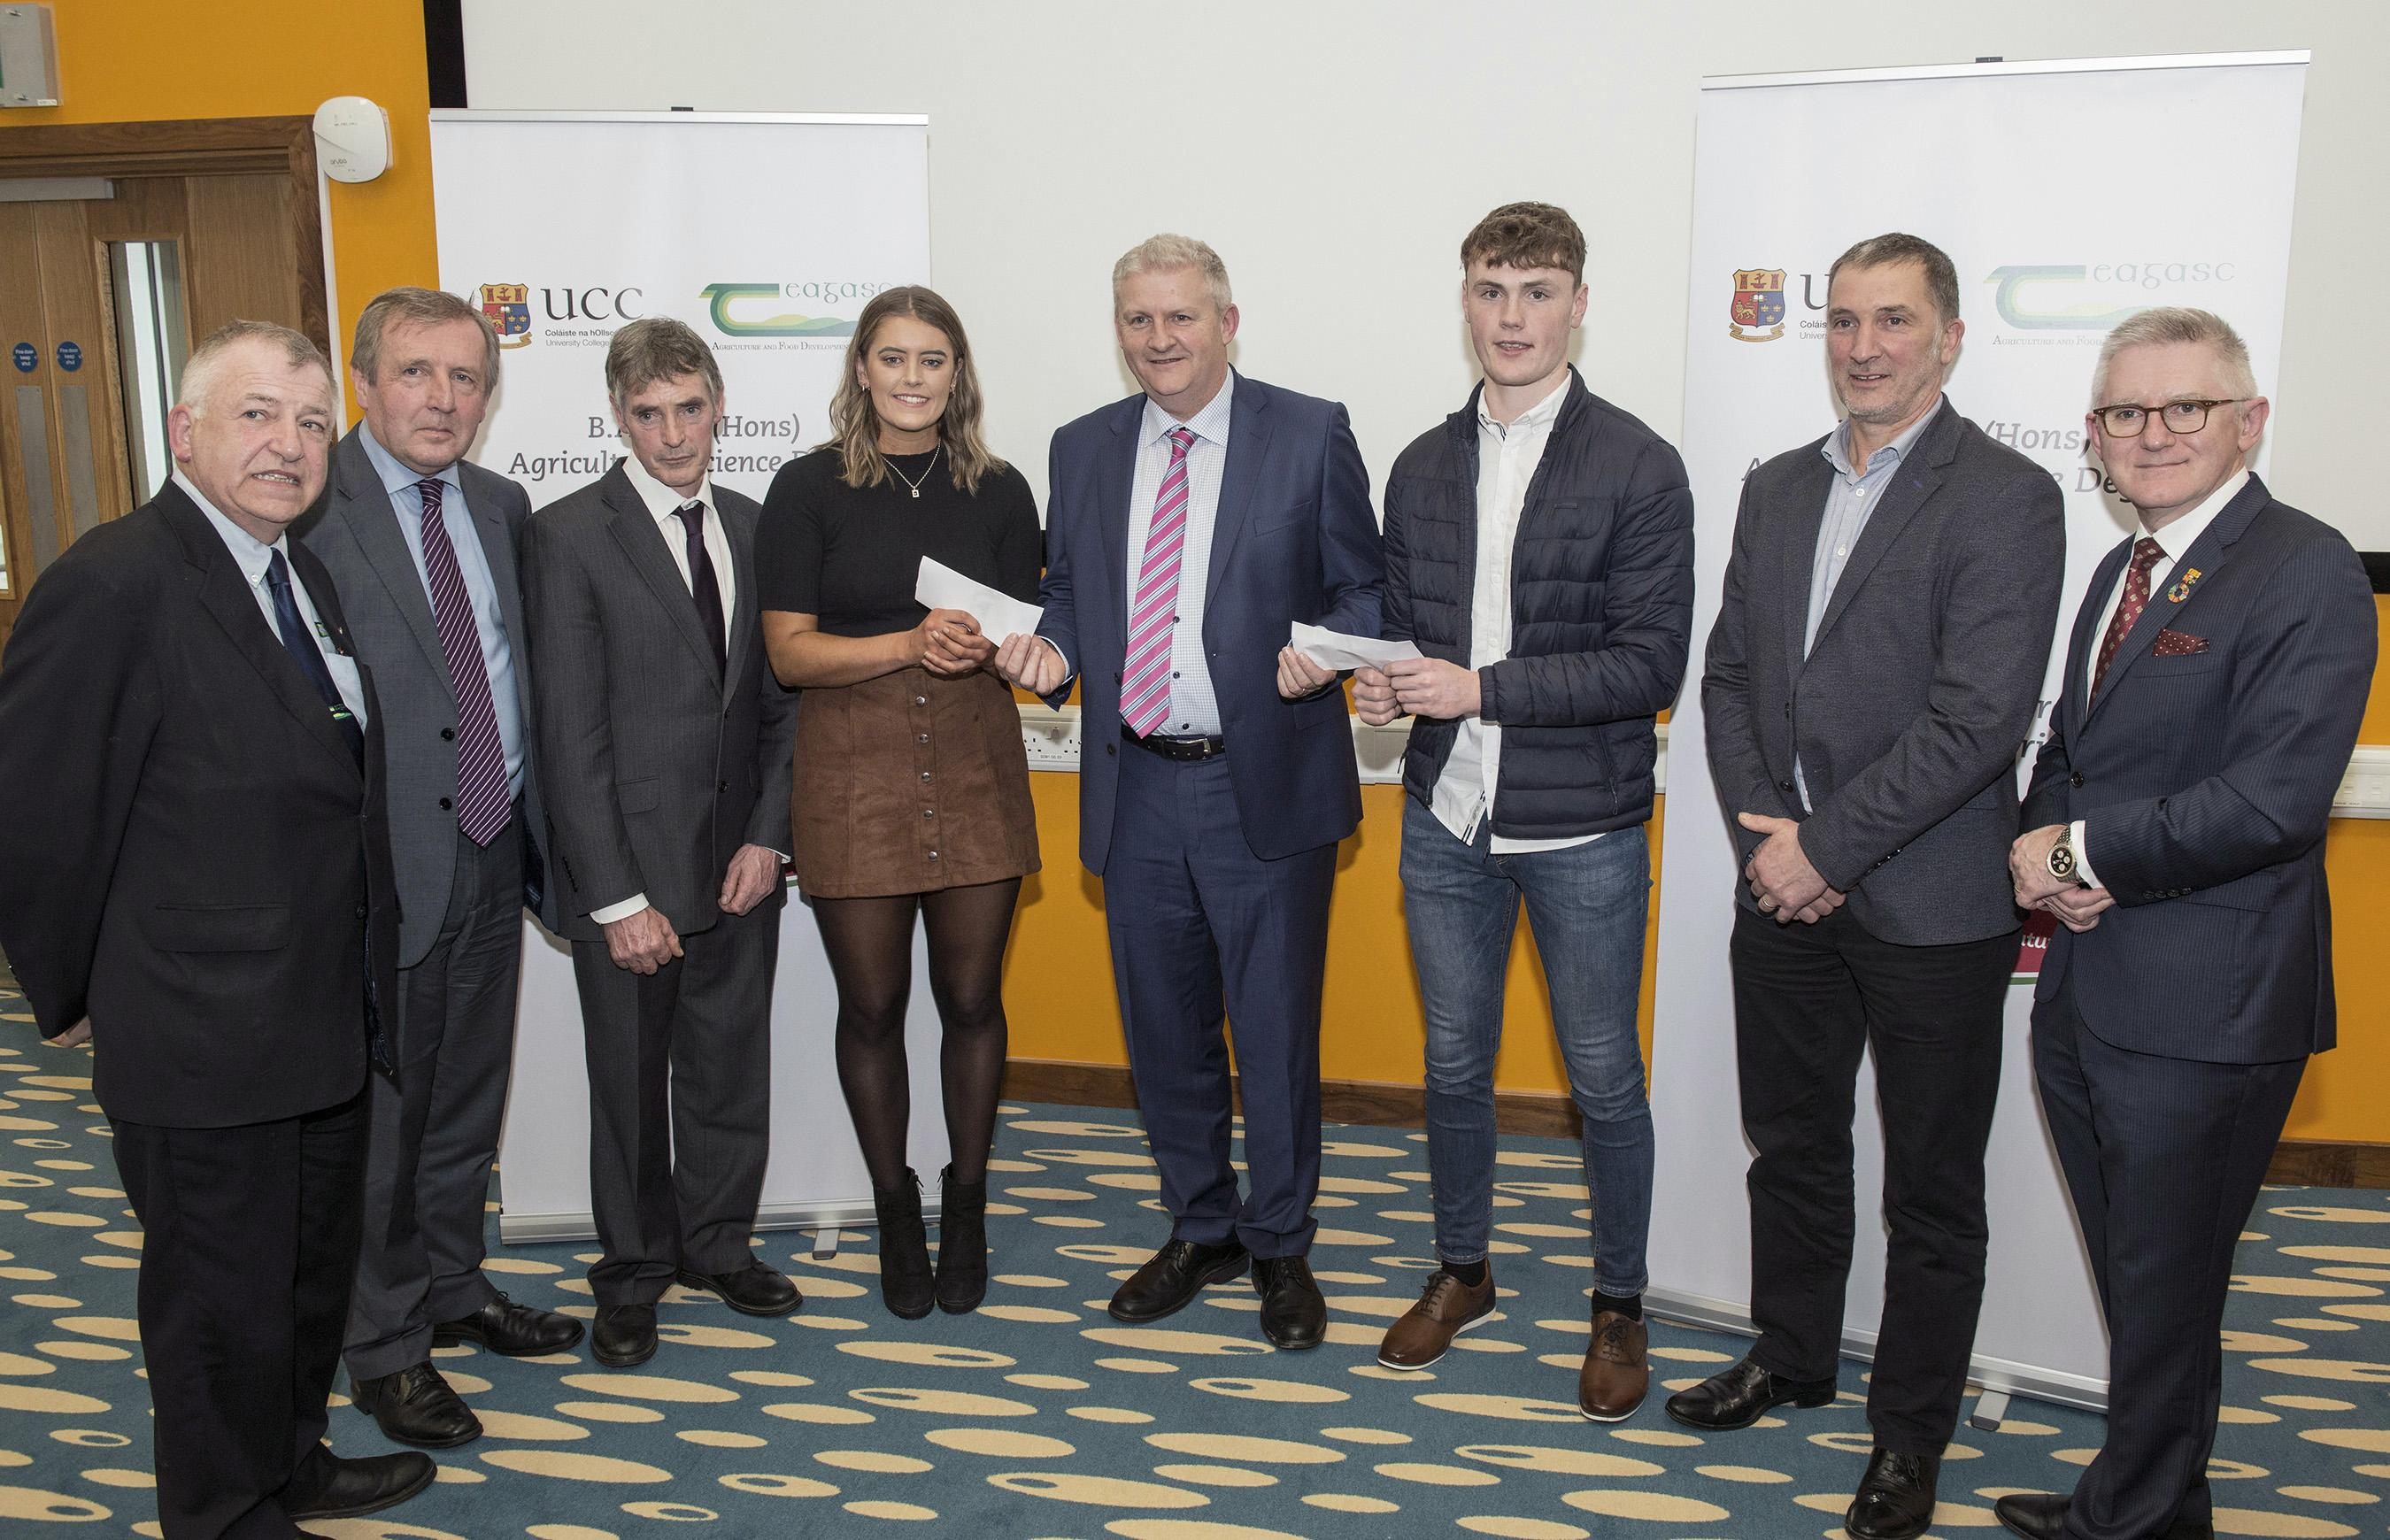 UCC Agricultural Science Degree launched by Minister Creed in Teagasc